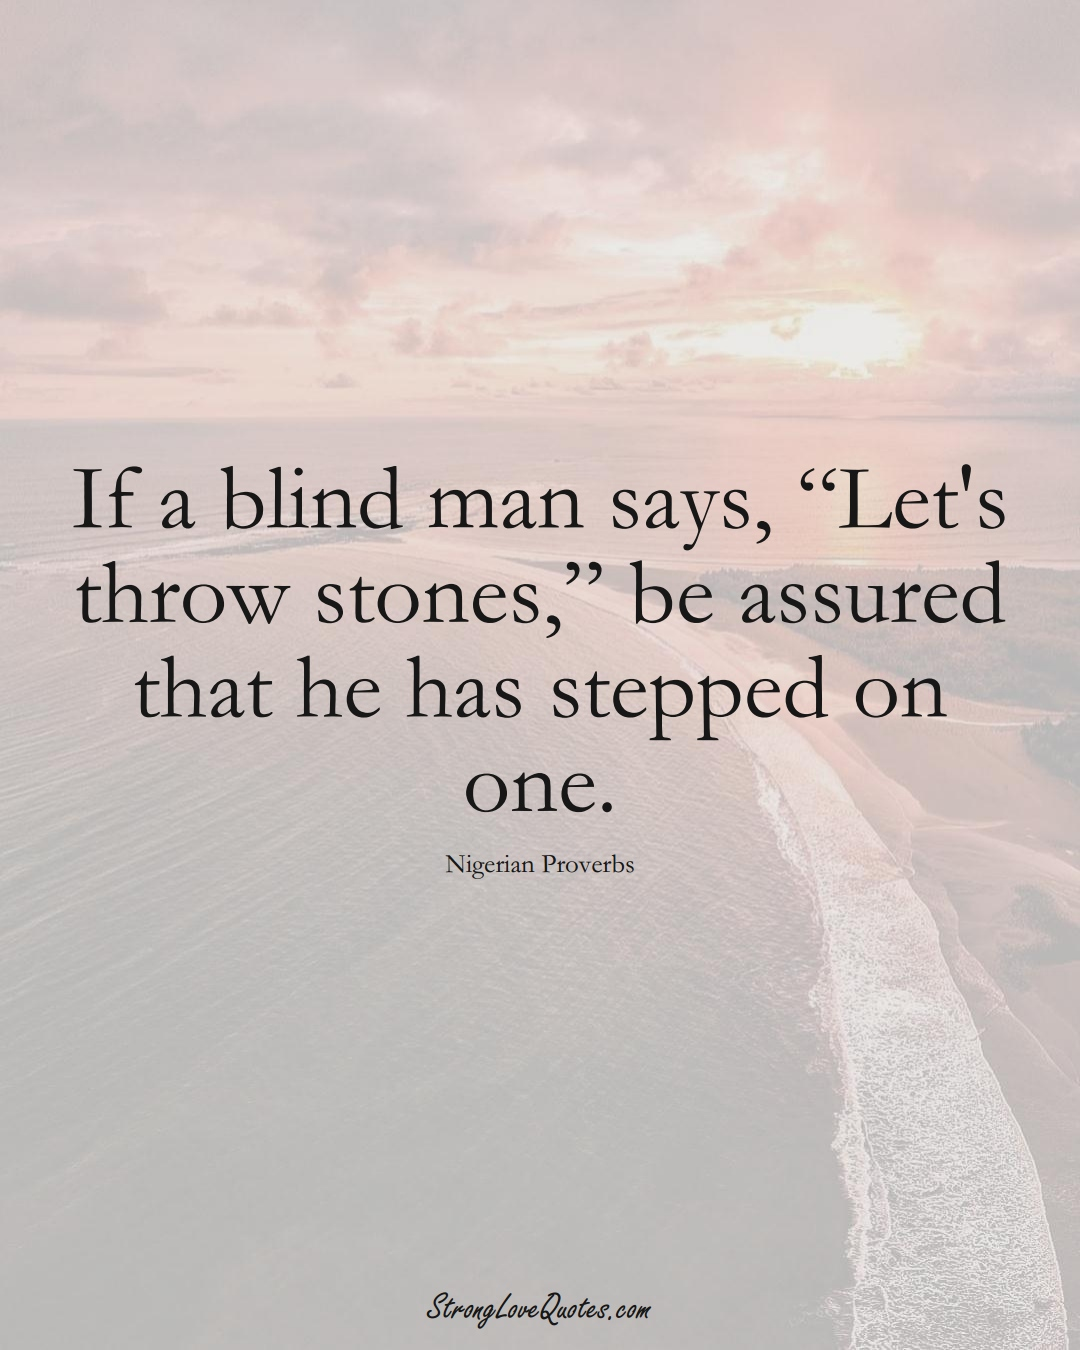 """If a blind man says, """"Let's throw stones,"""" be assured that he has stepped on one. (Nigerian Sayings);  #AfricanSayings"""